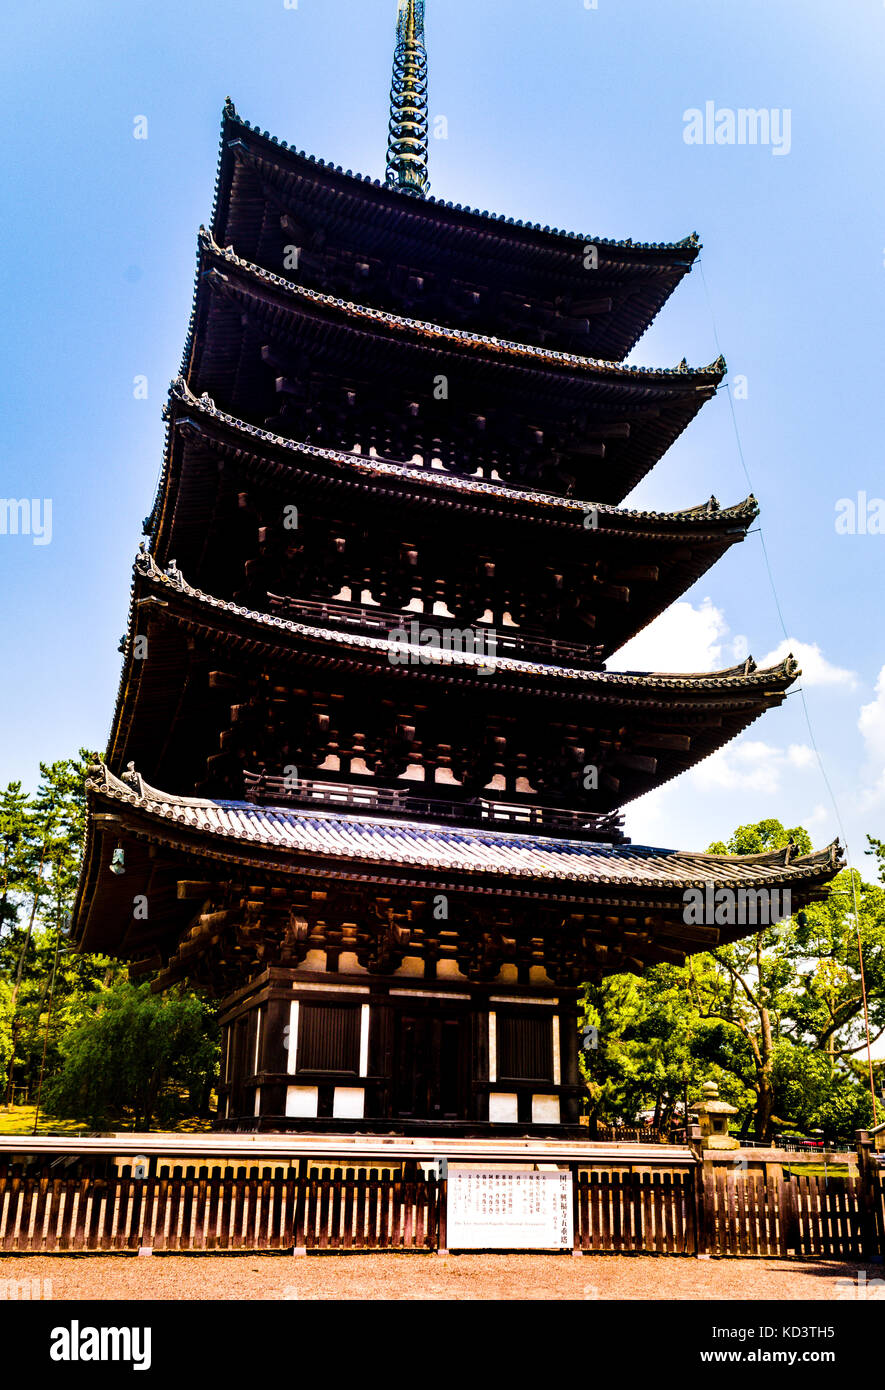 Five Story Pagoda in Nara, Kyoto, Japan - Stock Image